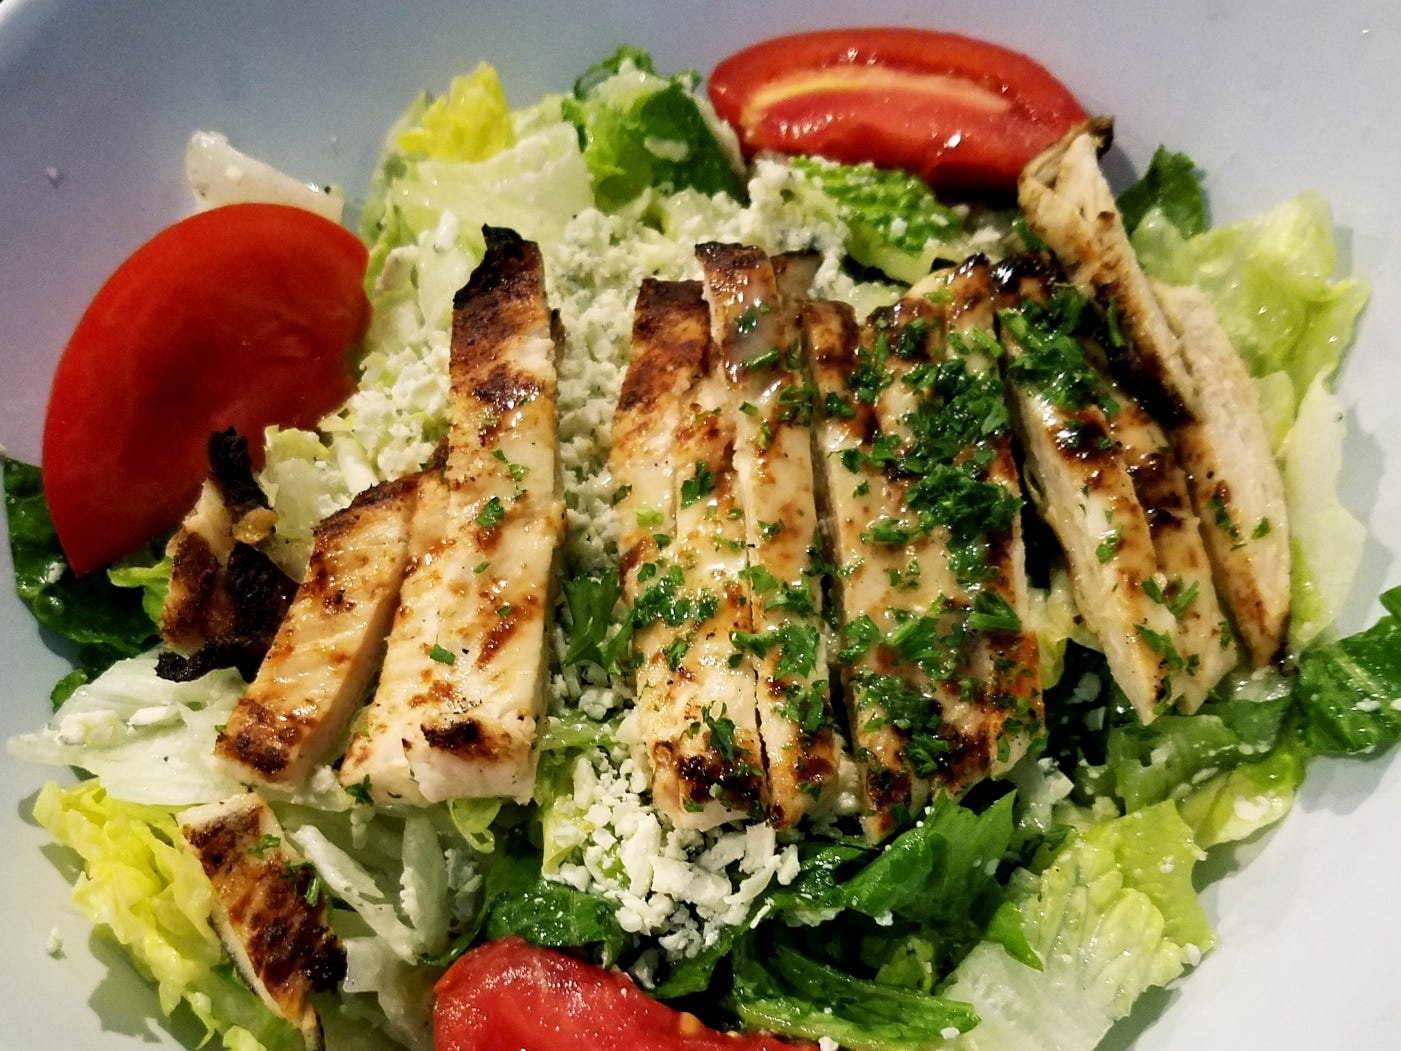 Manero's signature Gorgonzola salad romaine and iceberg lettuces tossed in housemade Italian dressing with tomato wedges and shredded Gorgonzola cheese. Seen here topped with gremolata seasoned chicken strips.